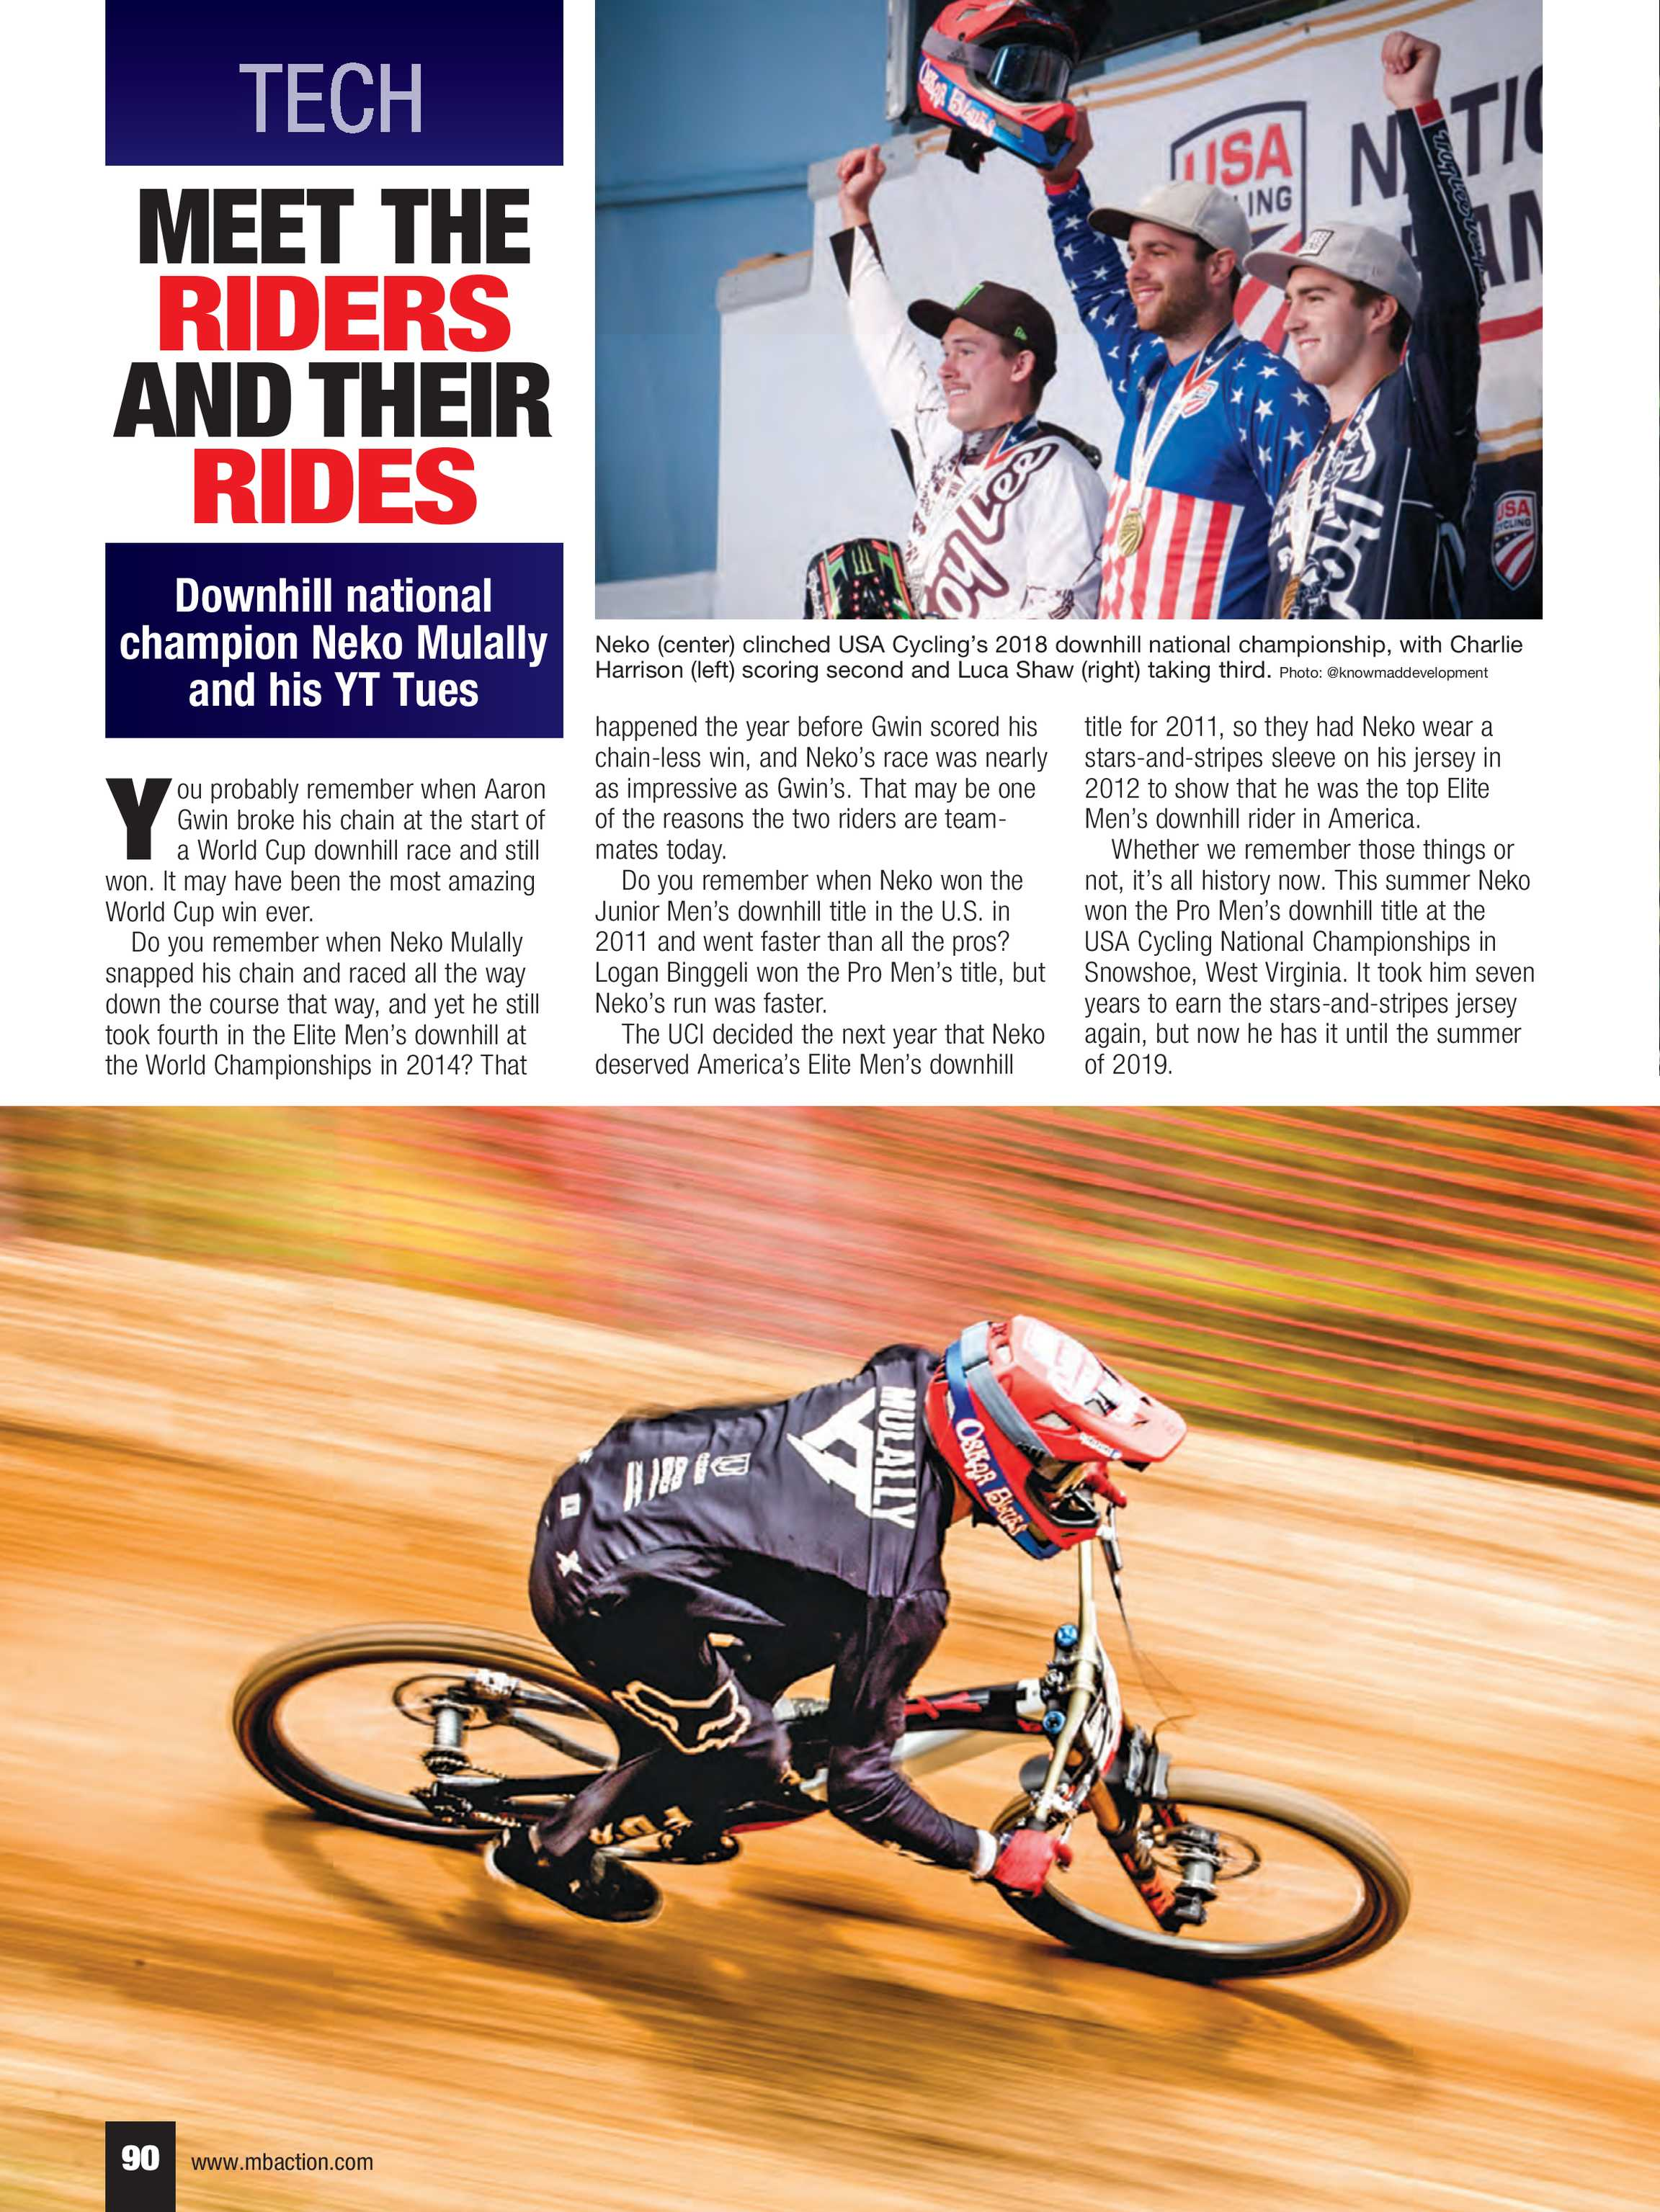 Mountain Bike Action - NOVEMBER 2018 - page 90